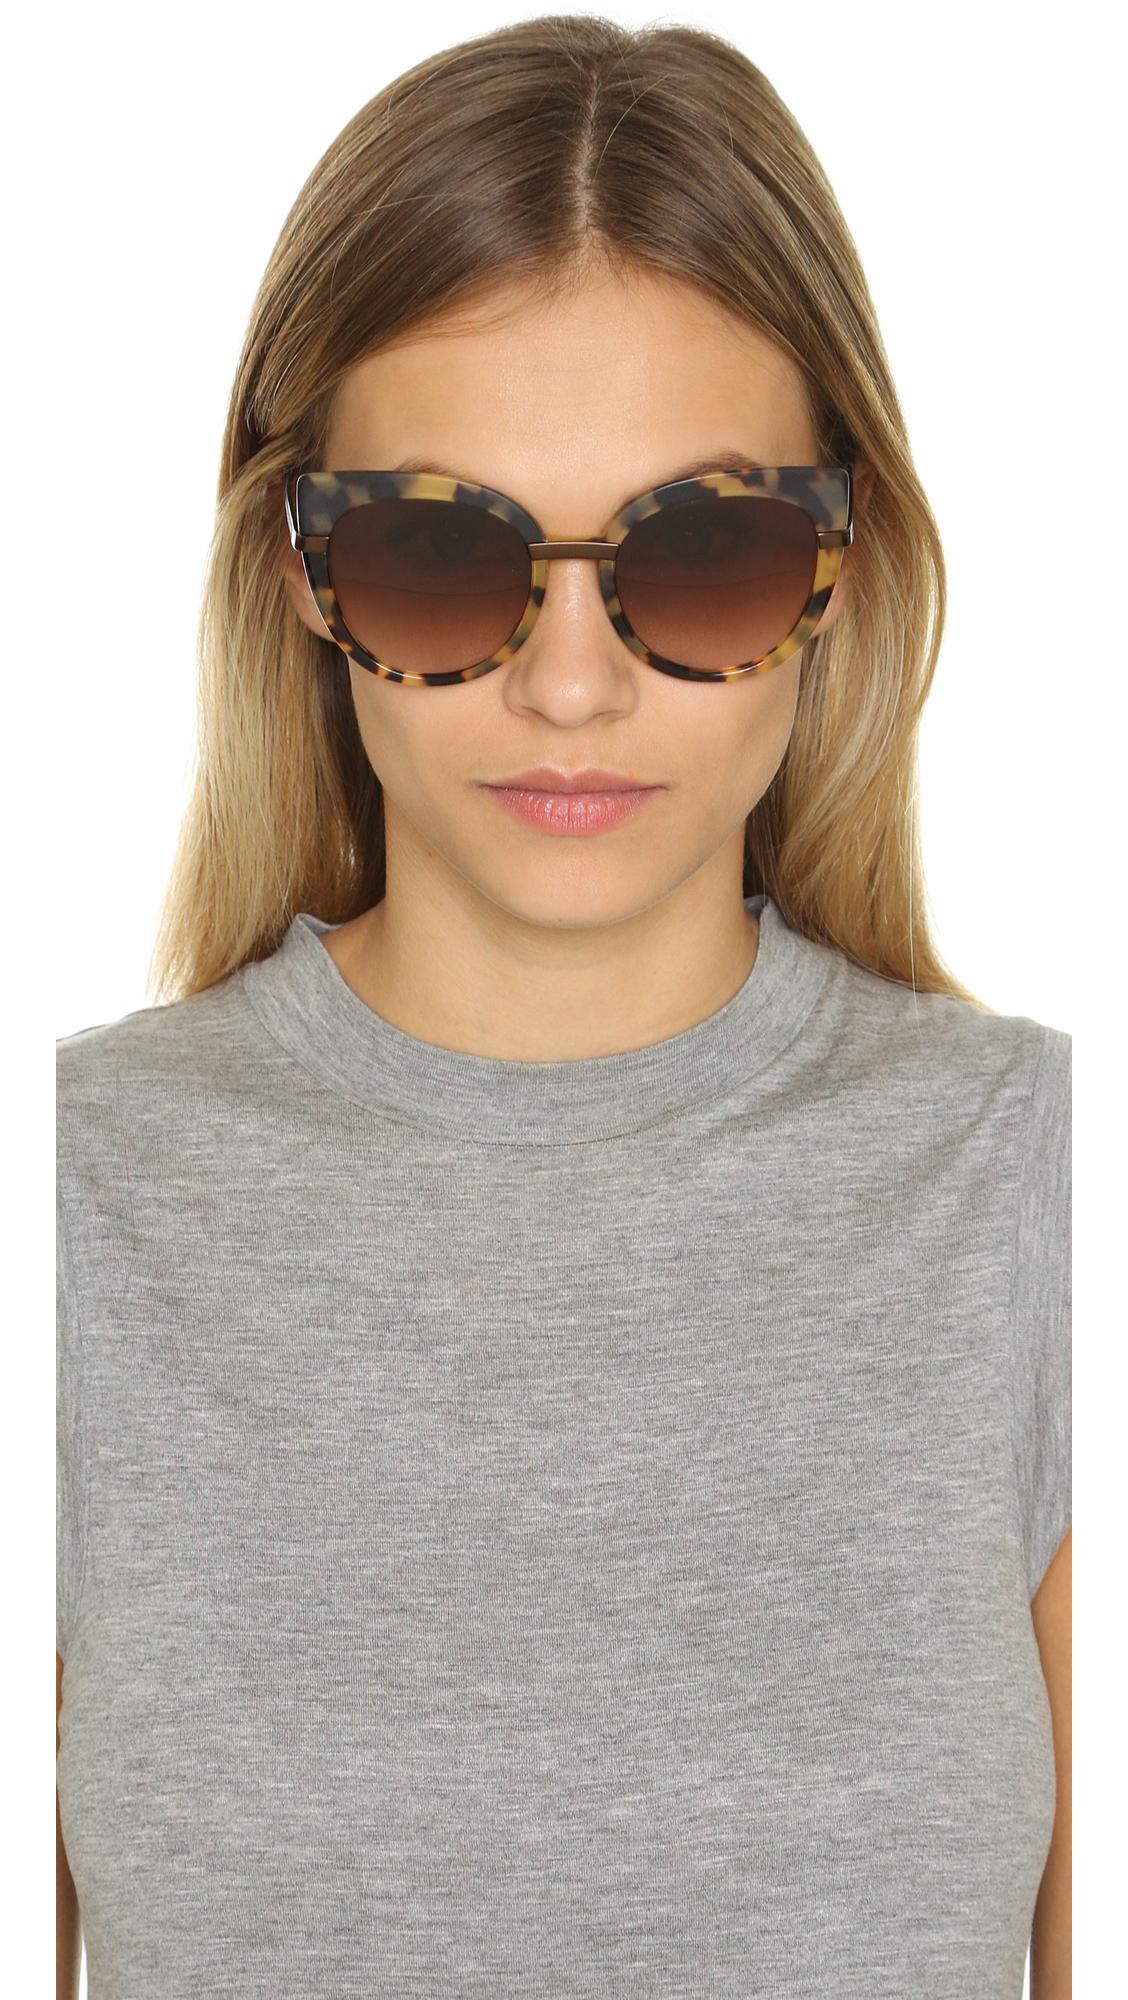 307425ccbd7 Lyst - Marc By Marc Jacobs Cat Eye Sunglasses - Black brown Grey in ...